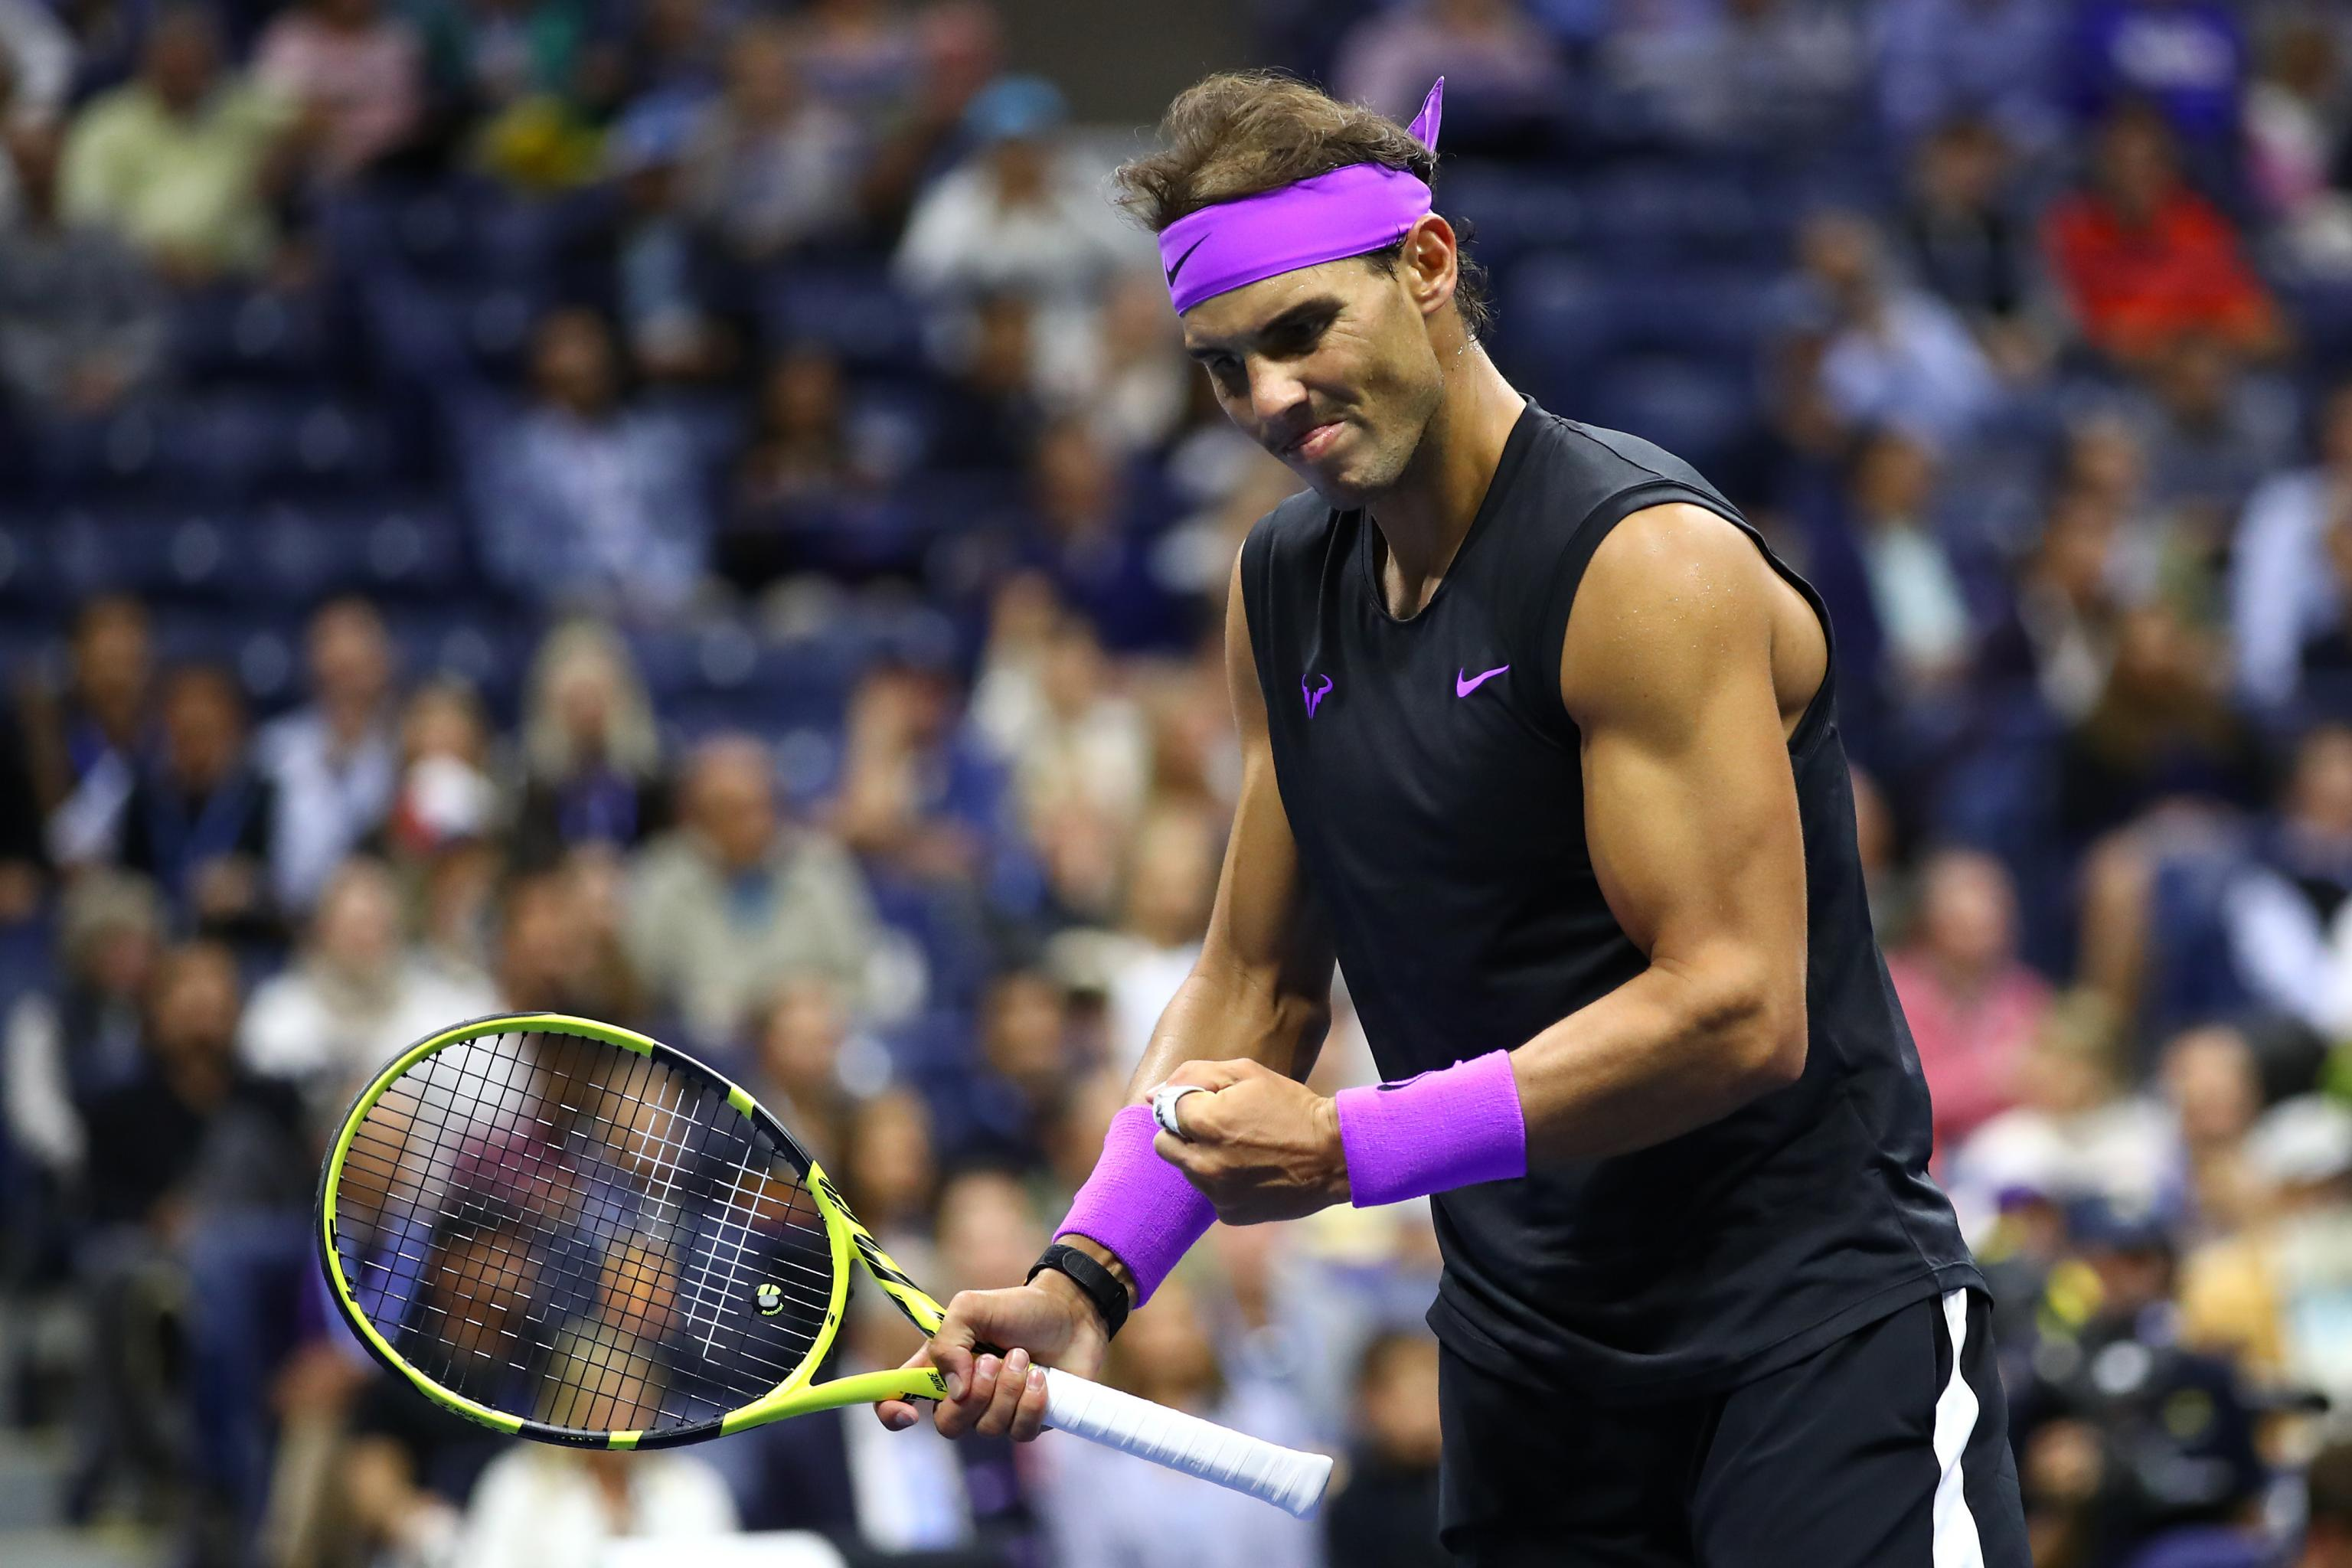 Us Open Tennis 2019 Men S Final Schedule Prediction And Prize Money Bleacher Report Latest News Videos And Highlights